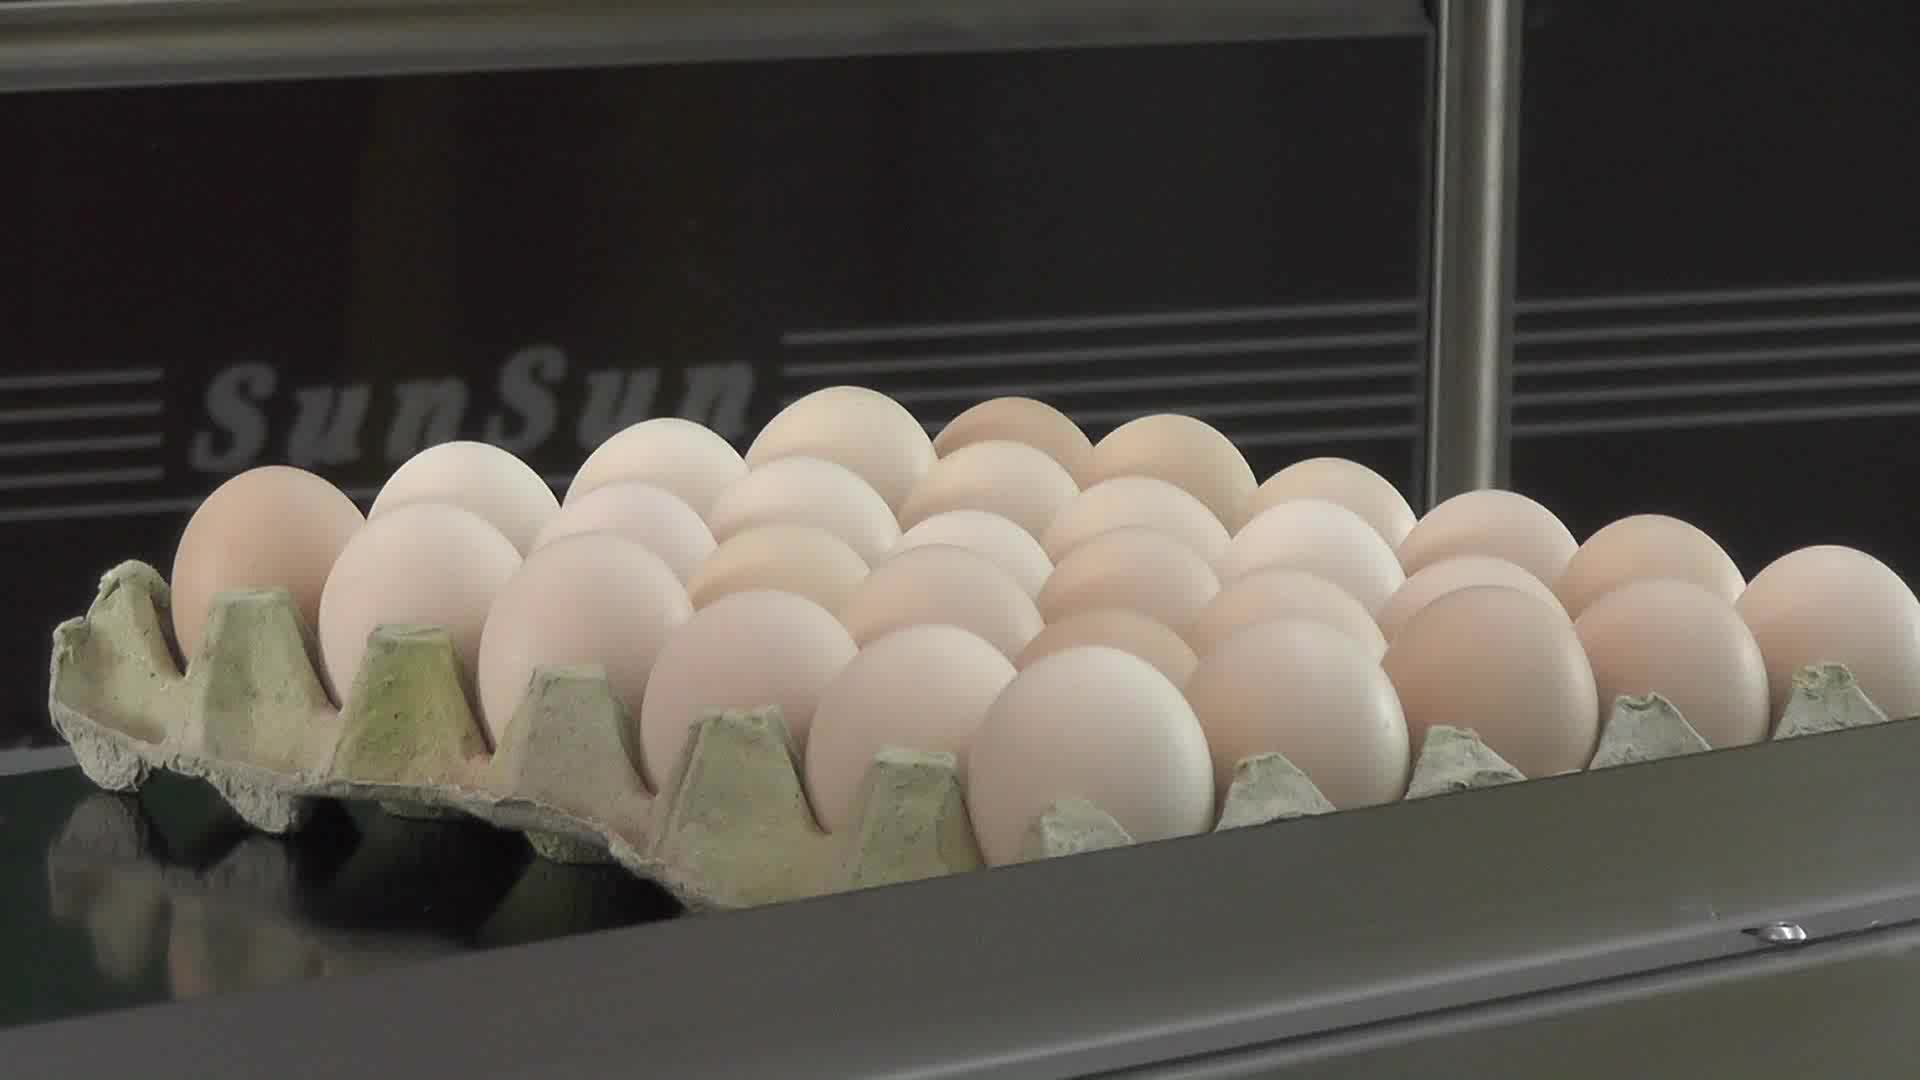 Cost-efficient And Eco-friendly Egg Inkjet Printer